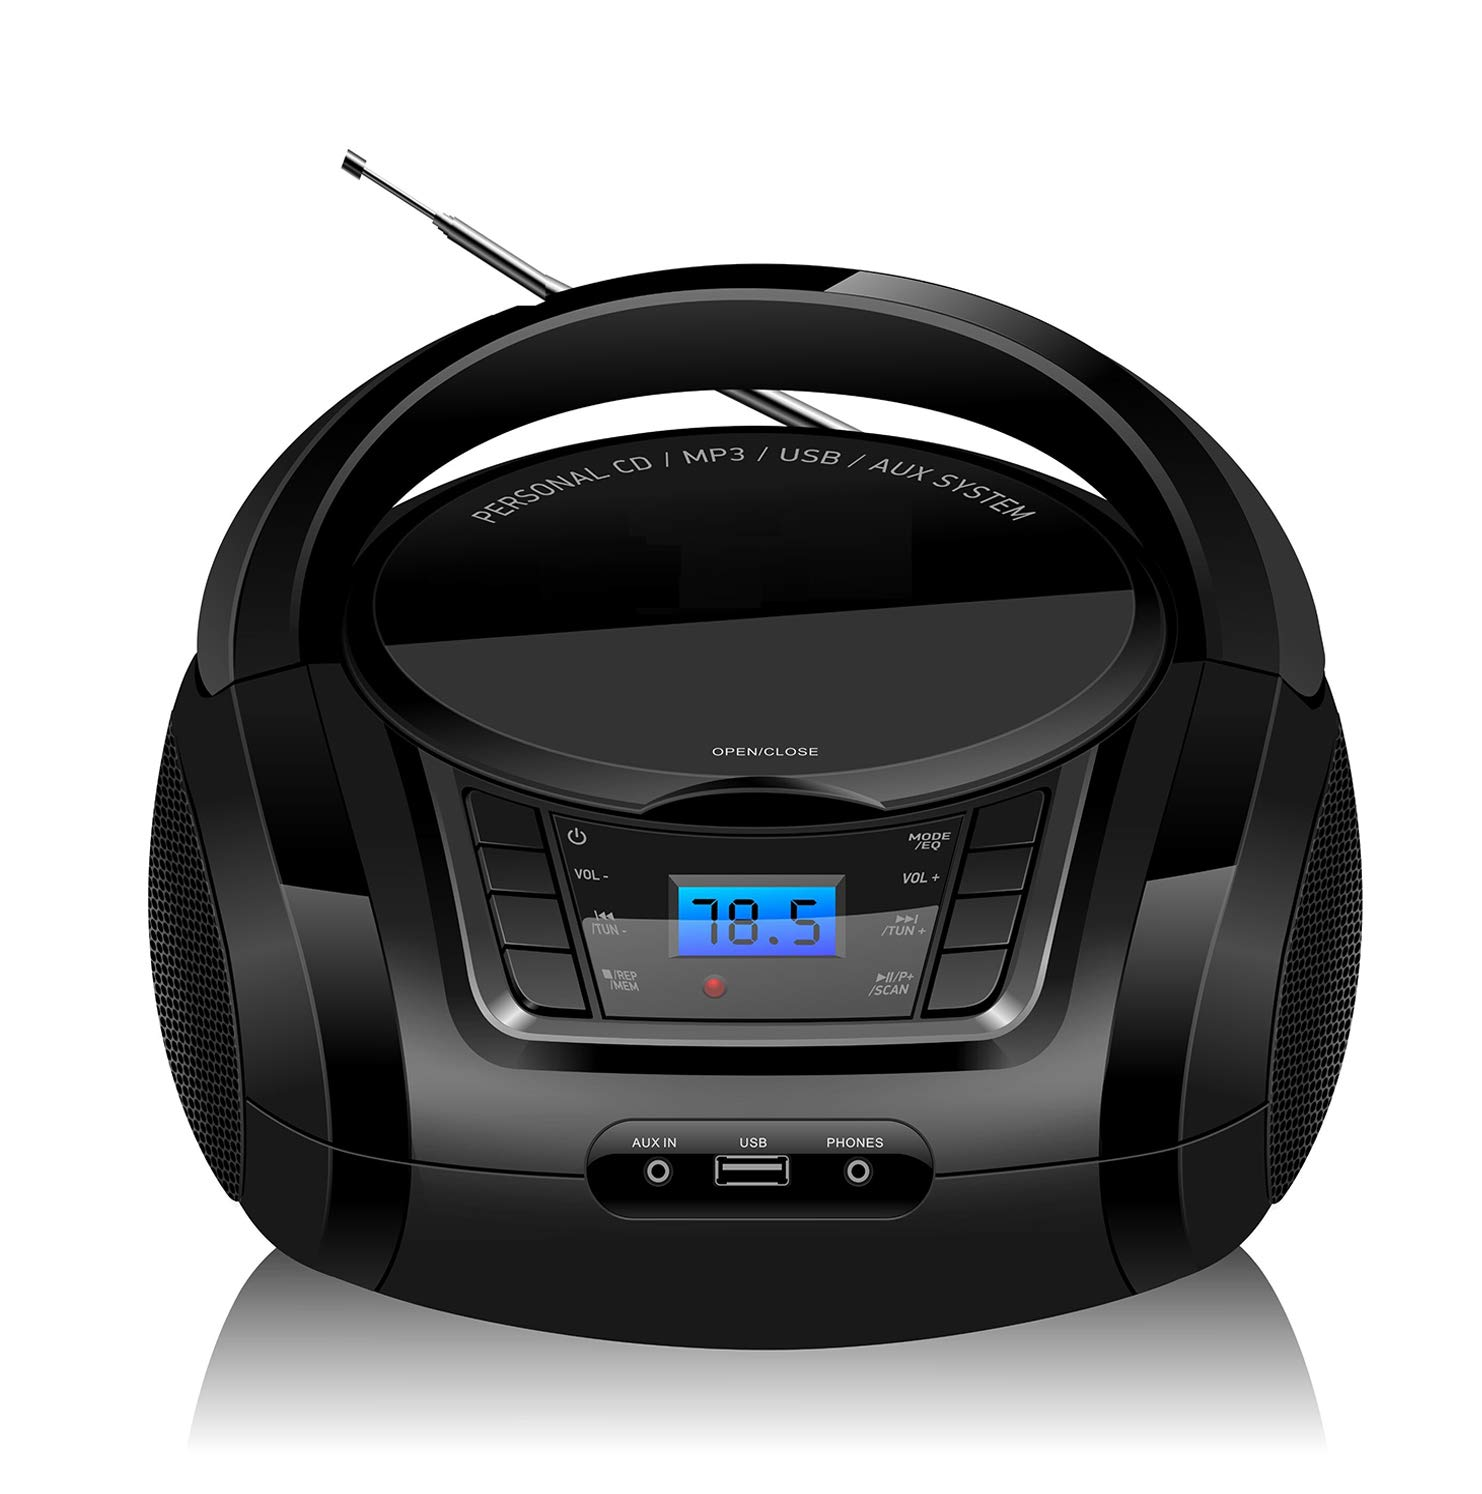 LONPOO Portable CD Boombox FM Radio/USB/Bluetooth/AUX Input and Earphone Jack Output with Stereo Sound Speaker Audio Player-Black